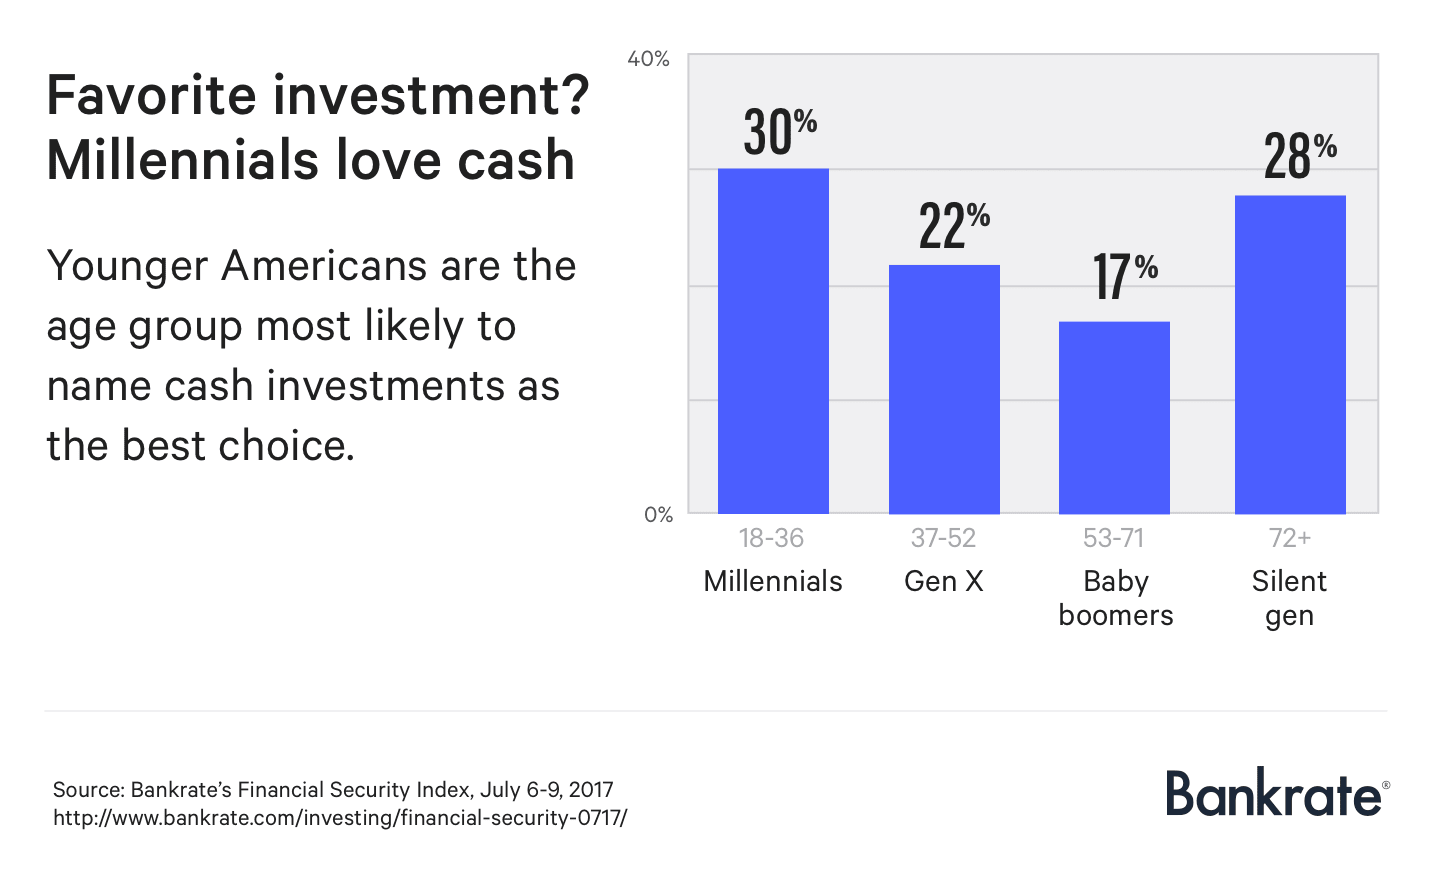 Favorite investment? Millennials love cash